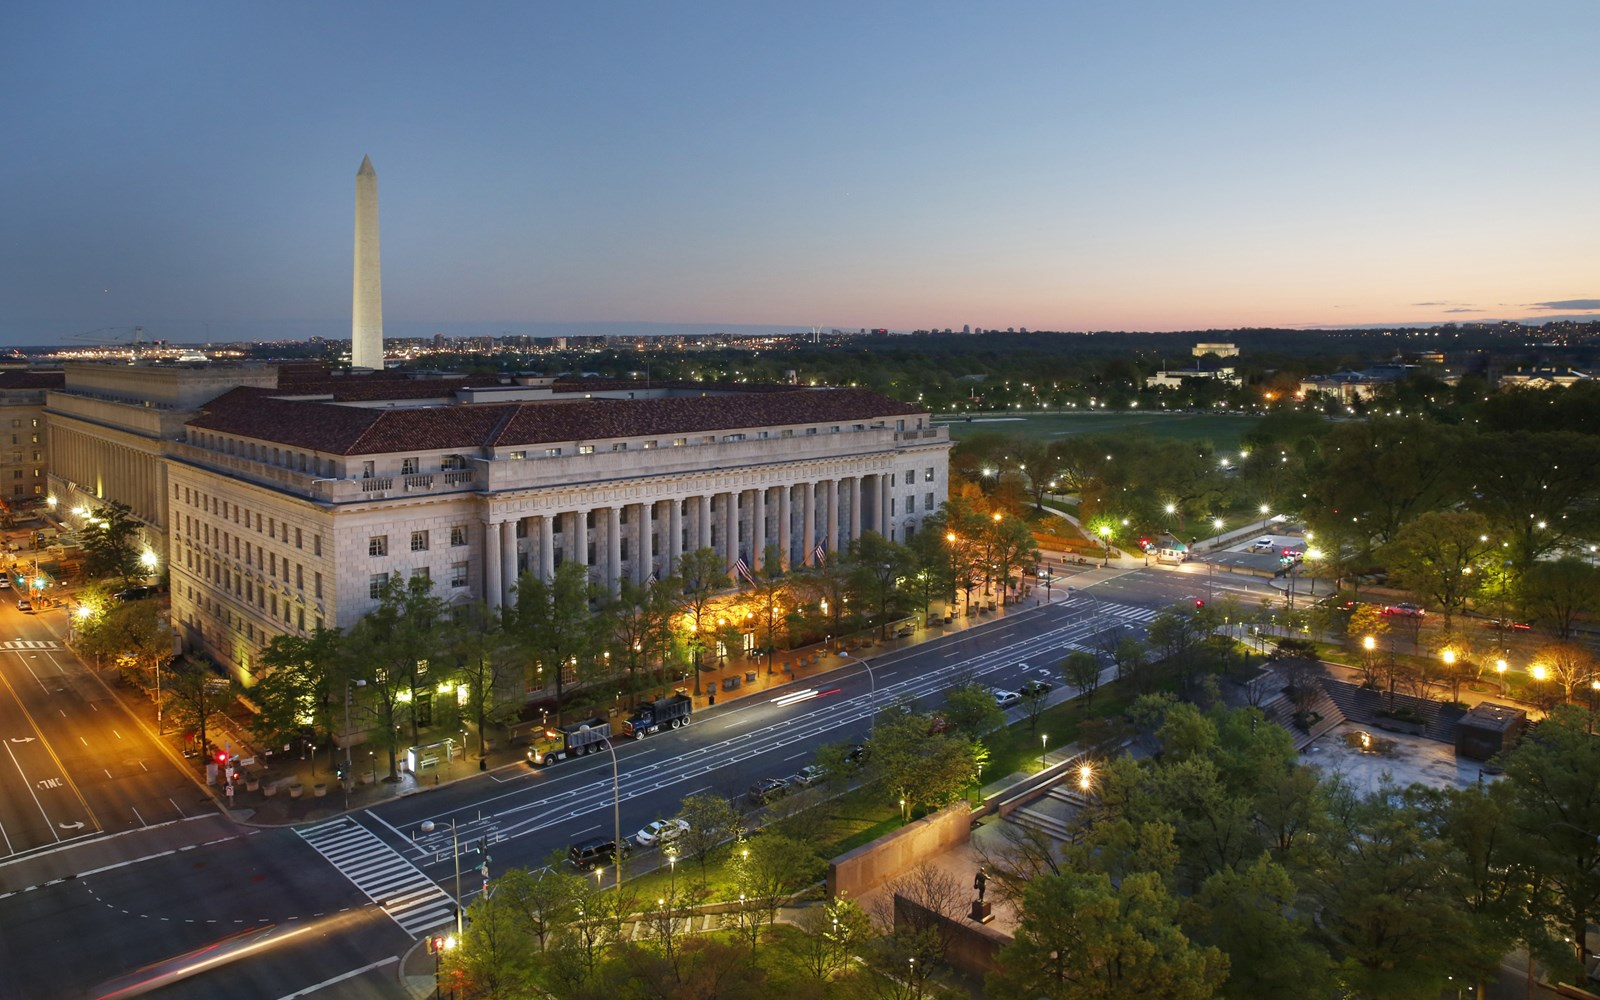 View from hotel with Washington Monument and Lincoln Memorial